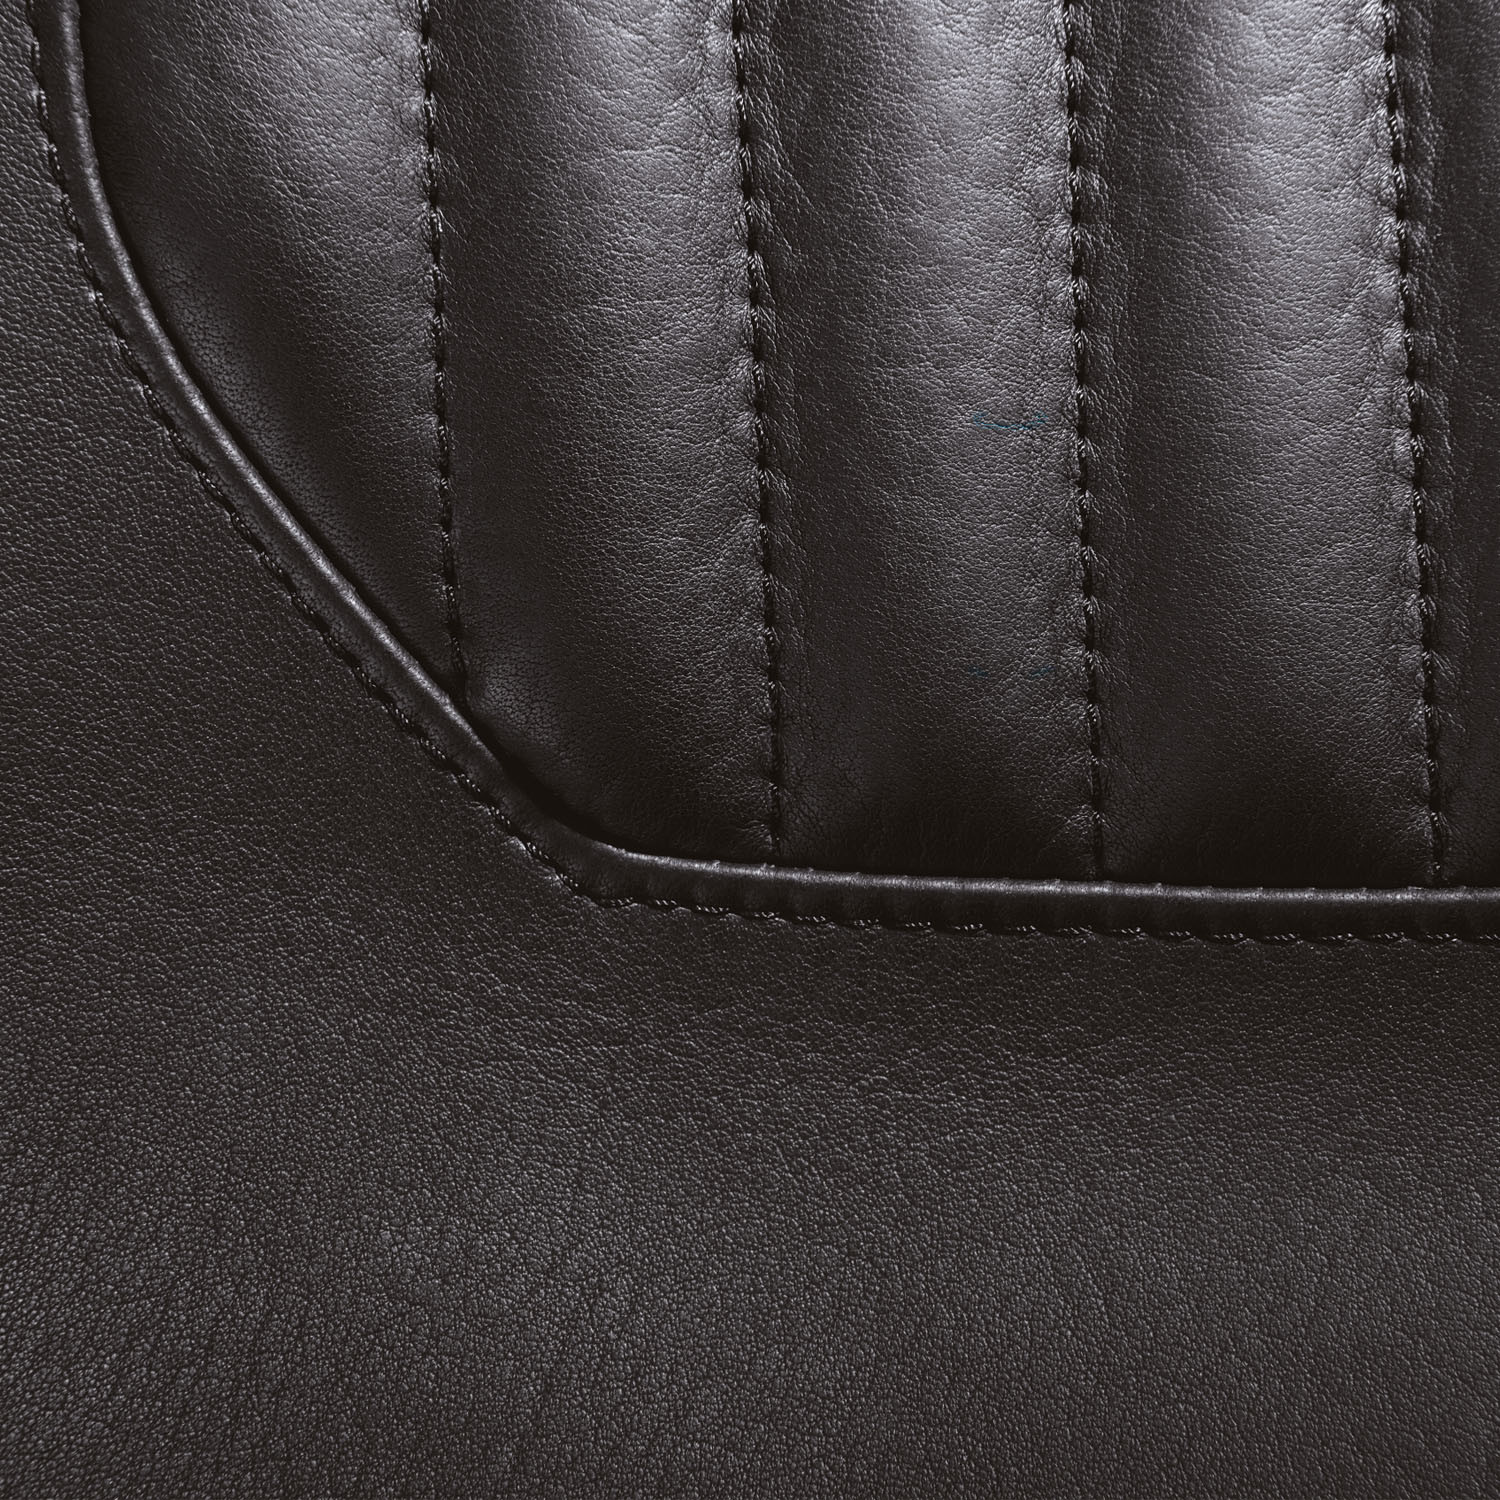 Silent Rush Leather Chair Detail from Sedus